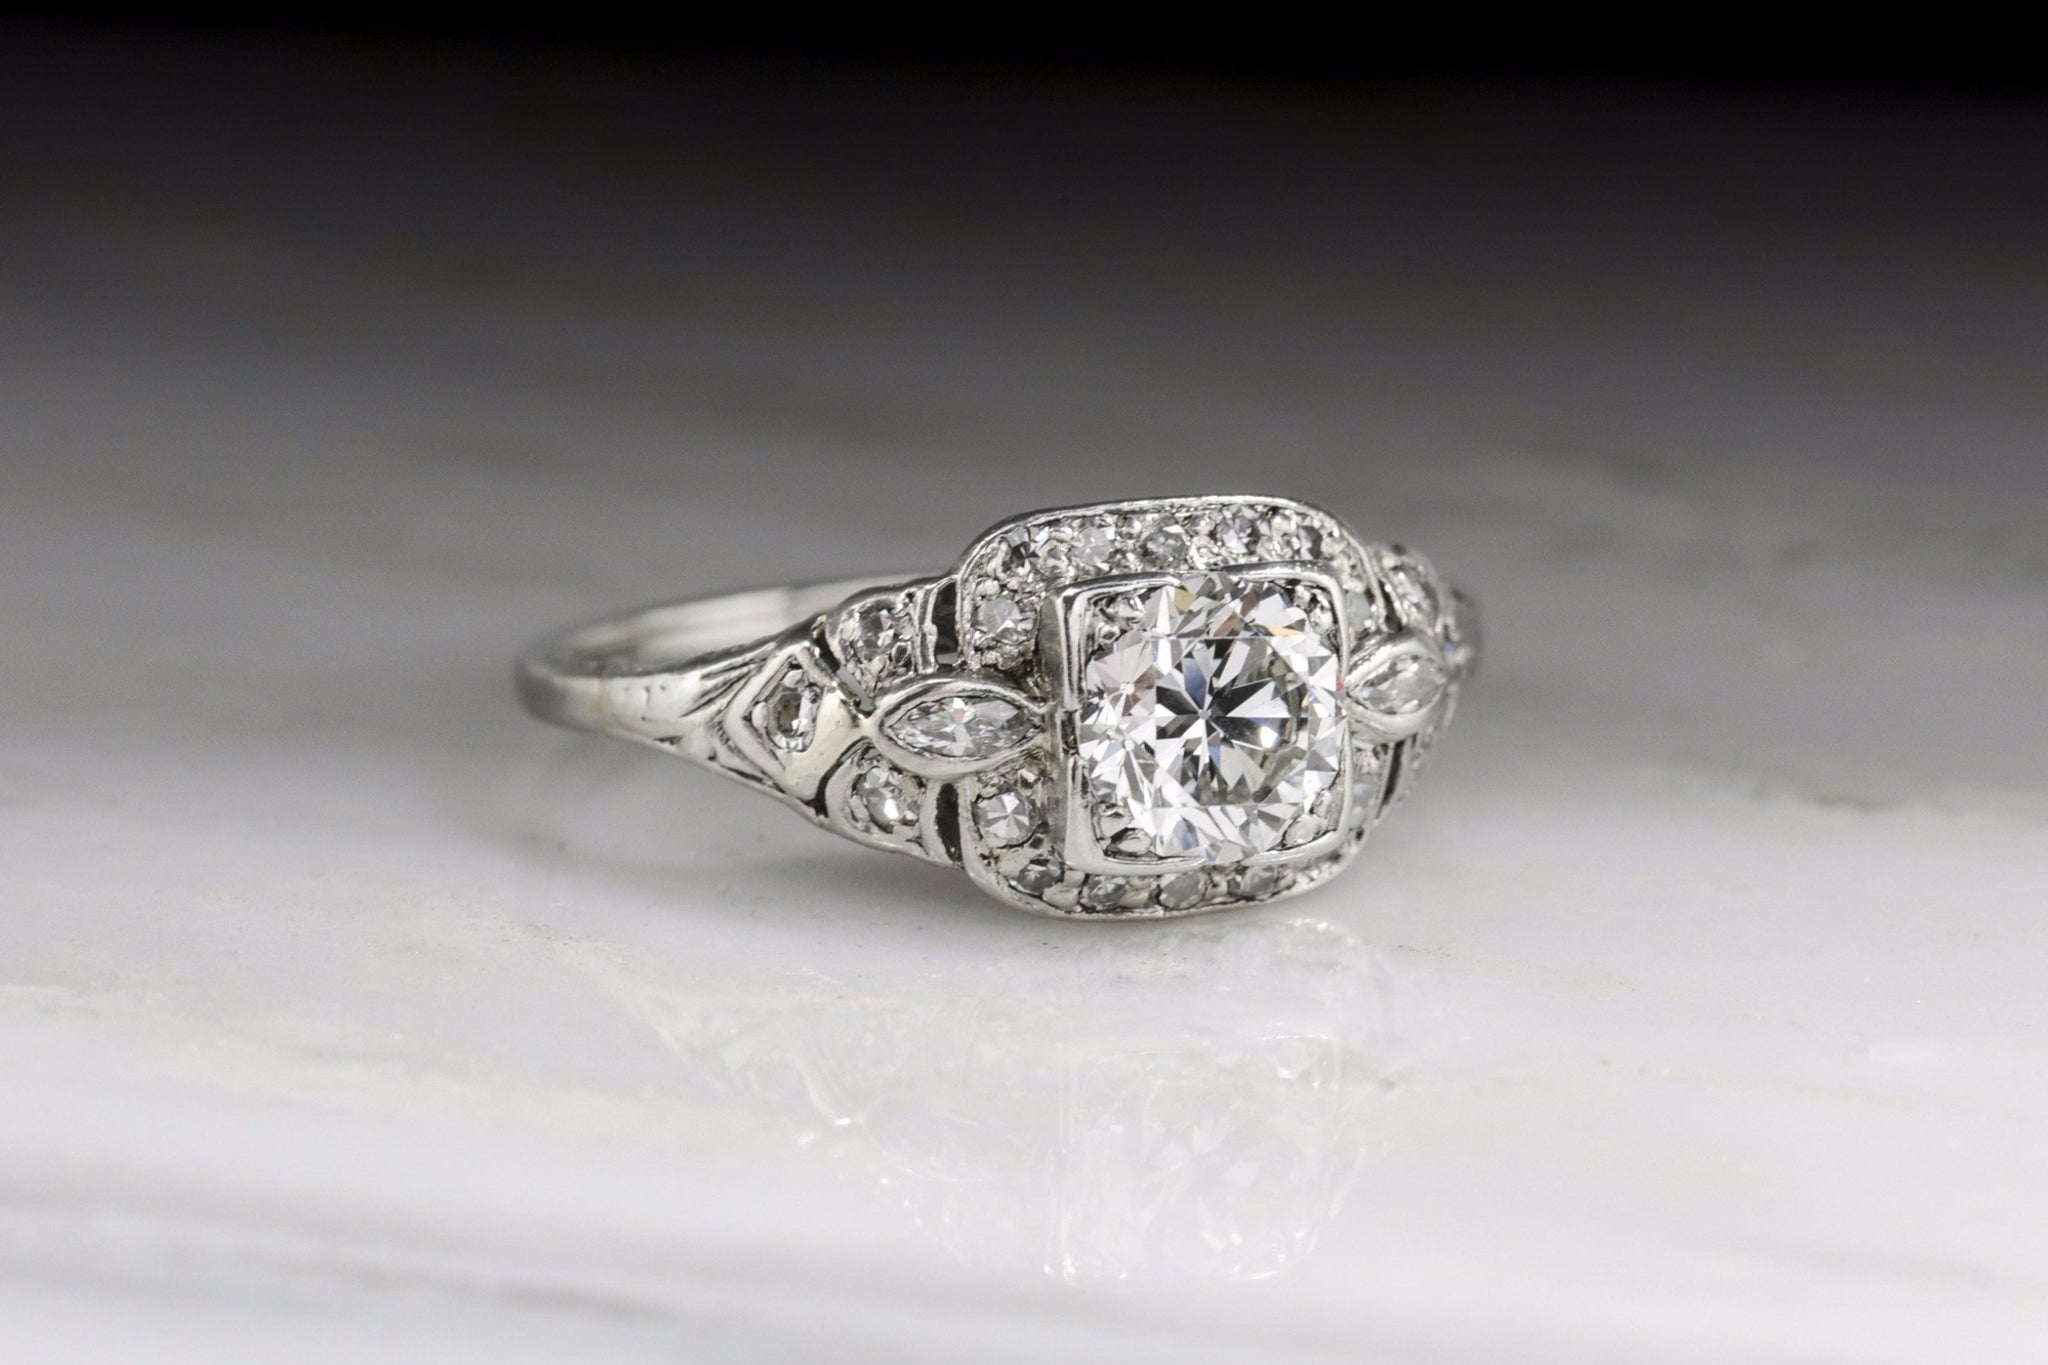 re ring europeancut shoot sequence ctw stunning diamond late edwardian and in certified engagement platinum cut with a art european deco carat antique old products vintage